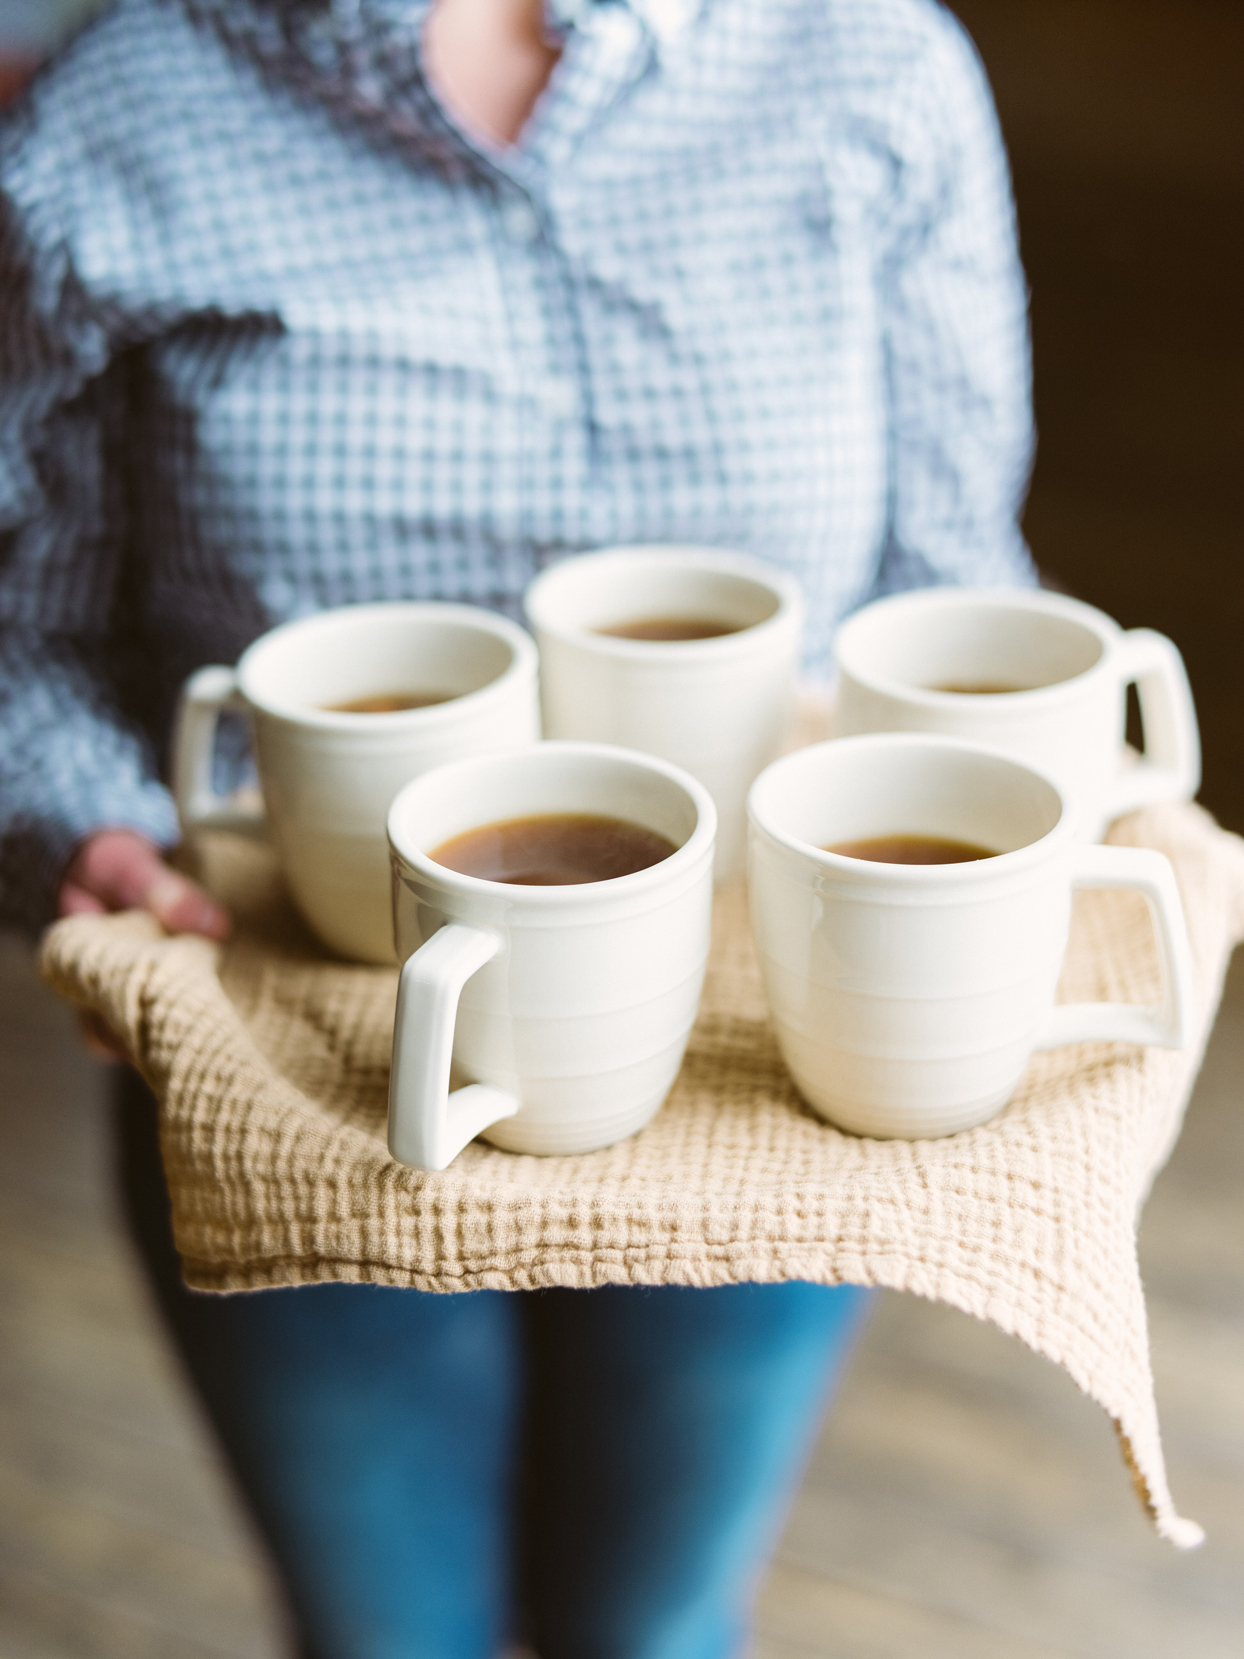 apple cider in white mugs on tray covered in tan linen